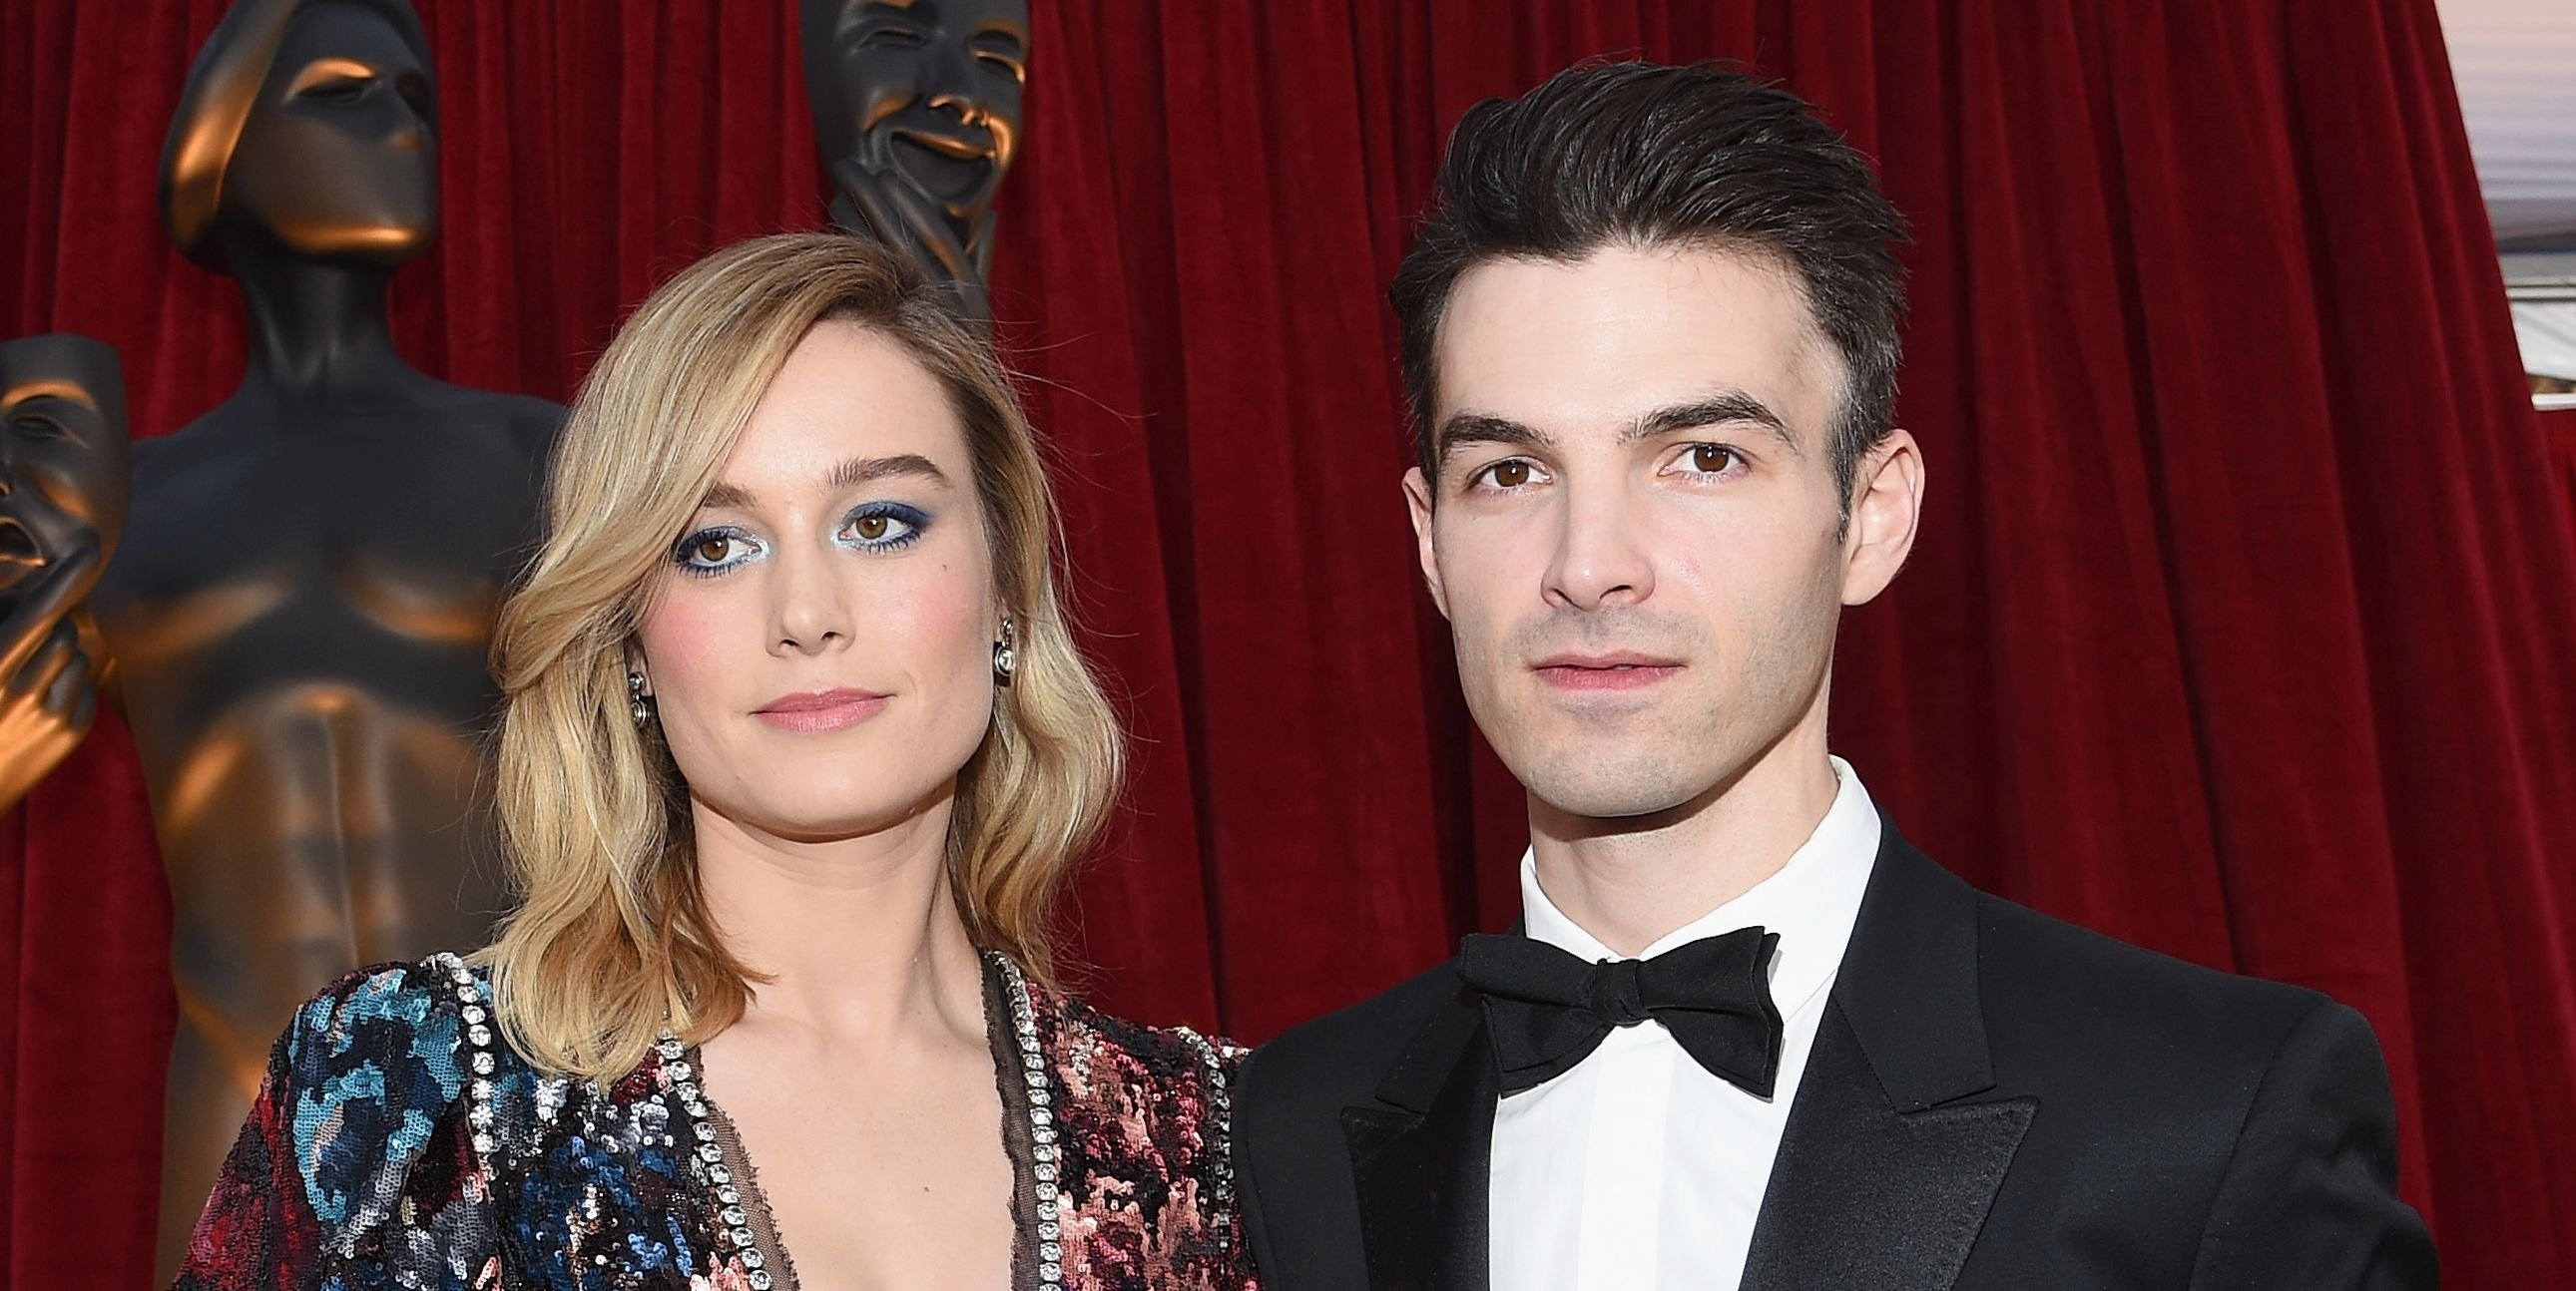 Brie Larson and Alex Greenwald Have Called Off Their Engagement